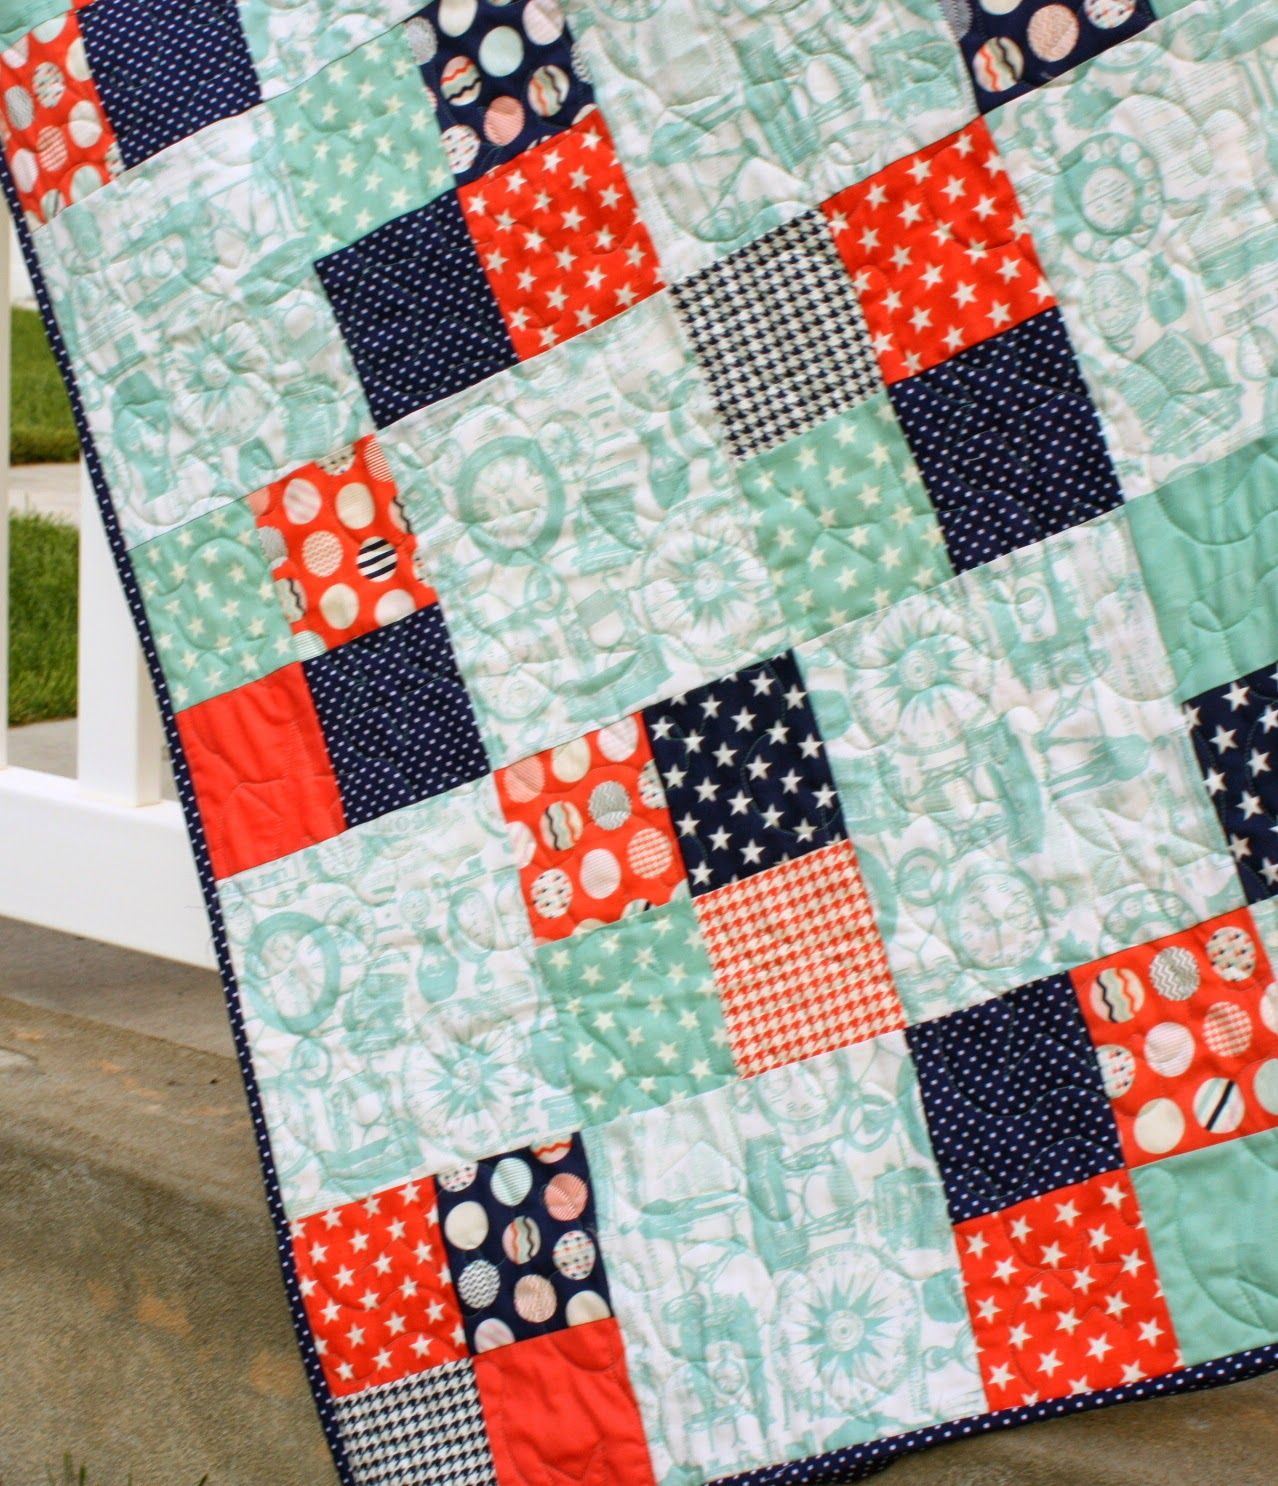 Free baby bed quilt patterns - Free Baby Bed Quilt Patterns